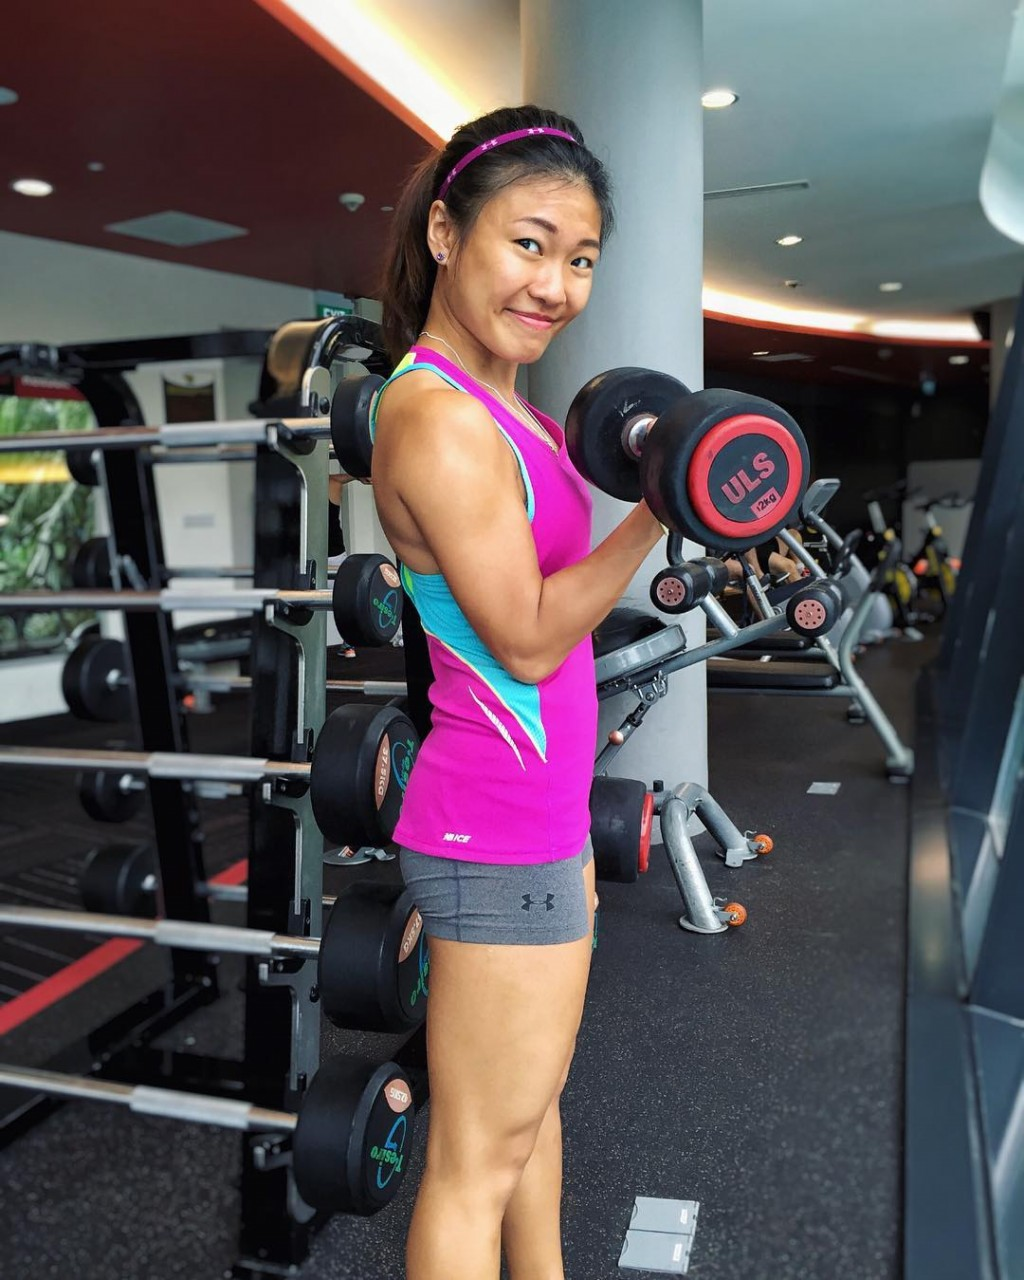 Free Weights Gym Near Me: 9 Pay-Per-Use Gyms In Singapore From $2.50/Entry For